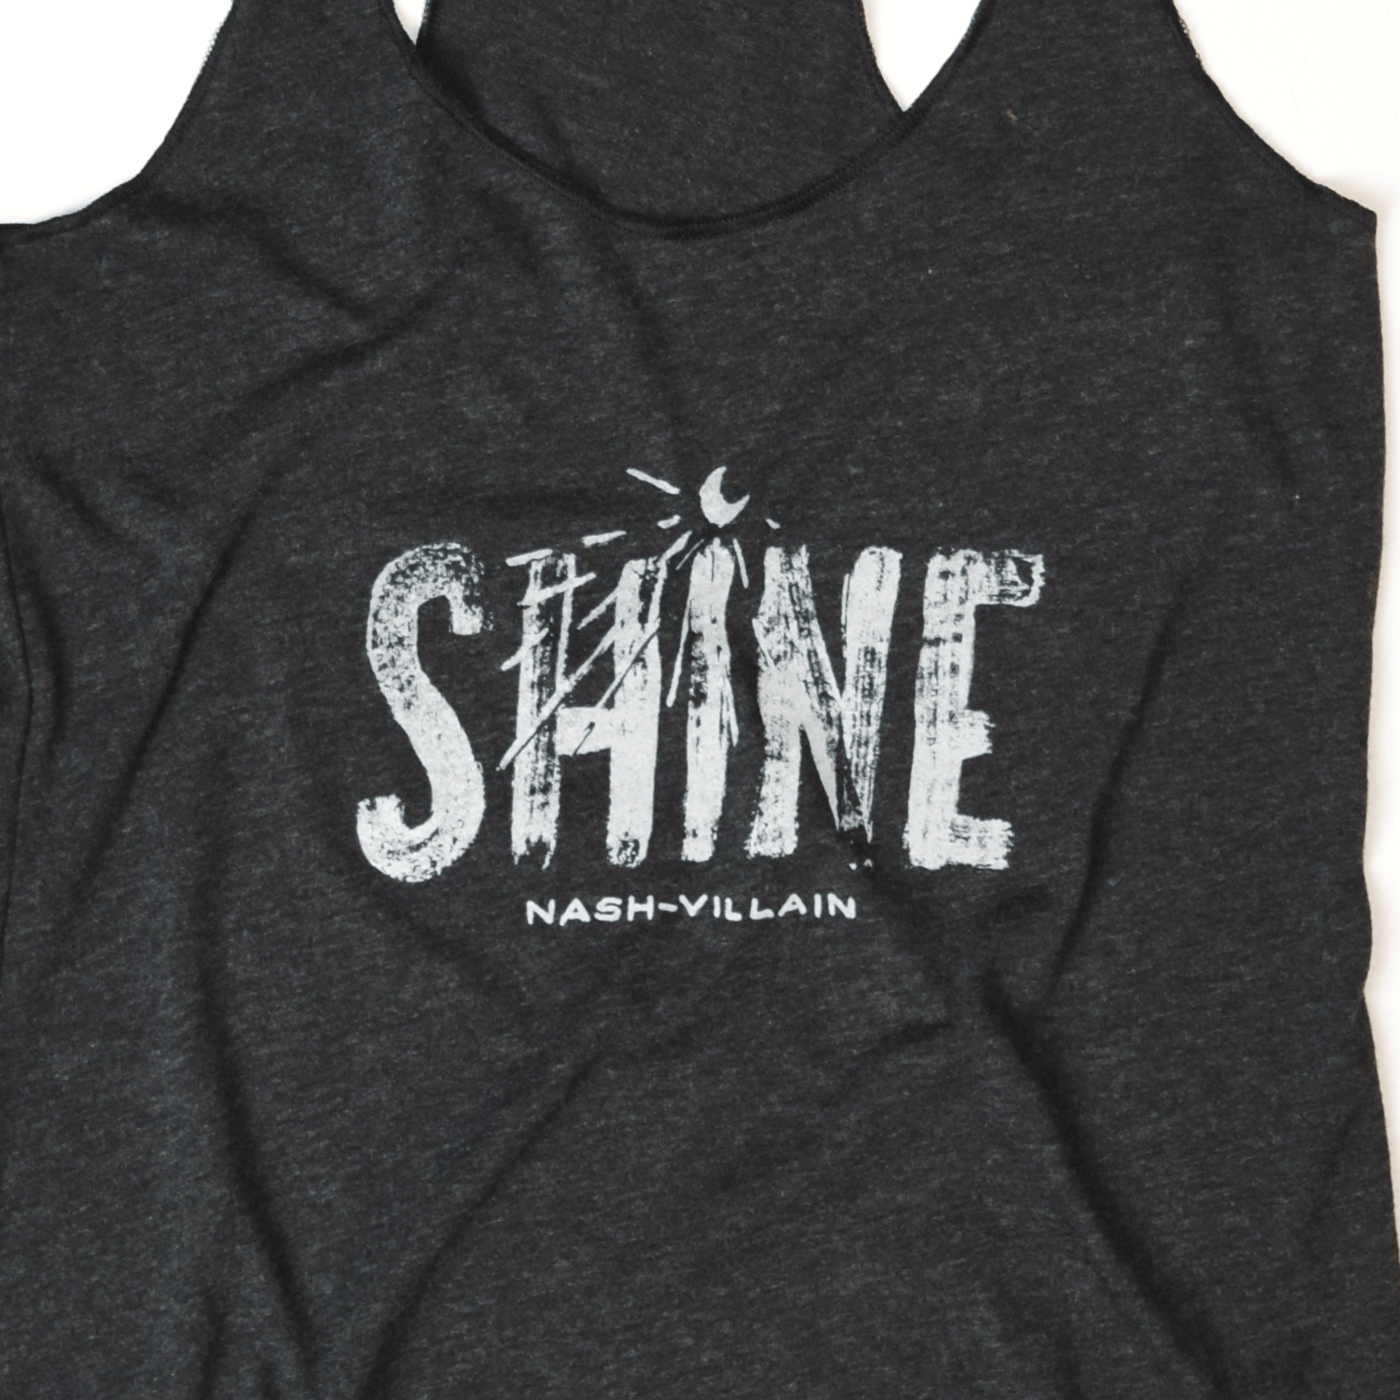 Moon shine nash-villain black tank design